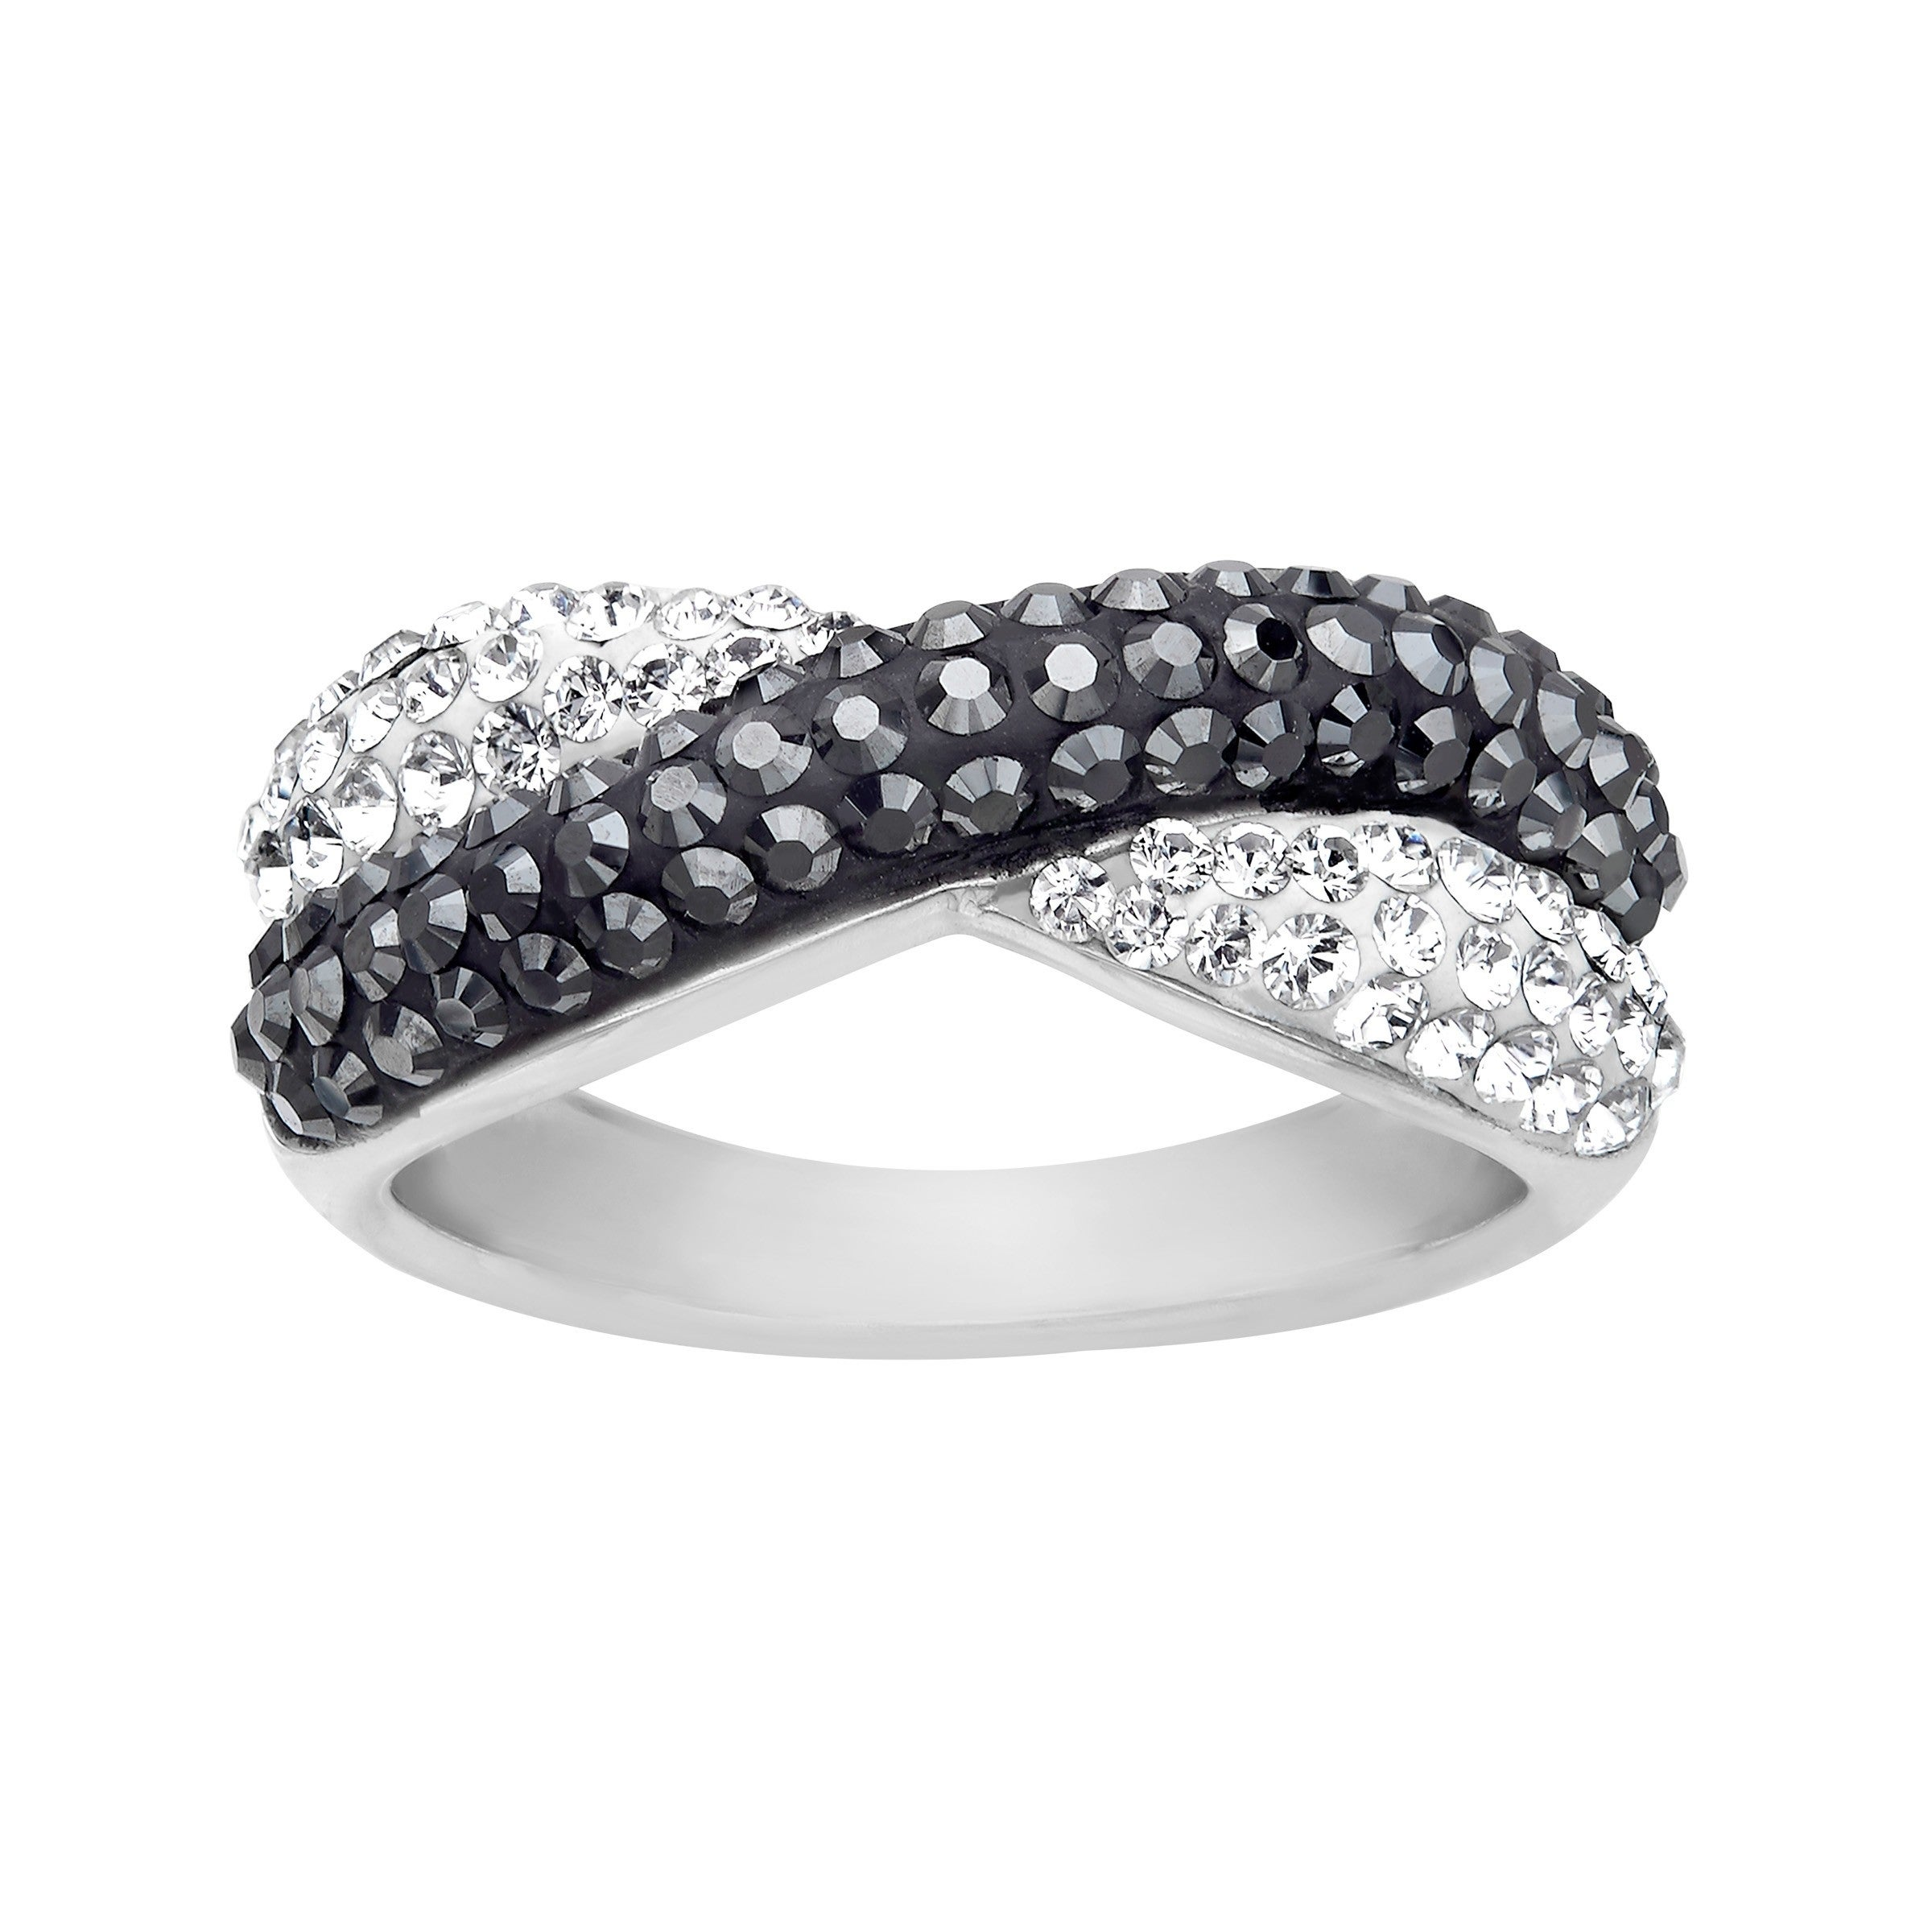 0cbfada00 Shop Crystaluxe Criss-Cross Band Ring with Swarovski Elements Crystals in Sterling  Silver - Black - Free Shipping On Orders Over $45 - Overstock - 13886361